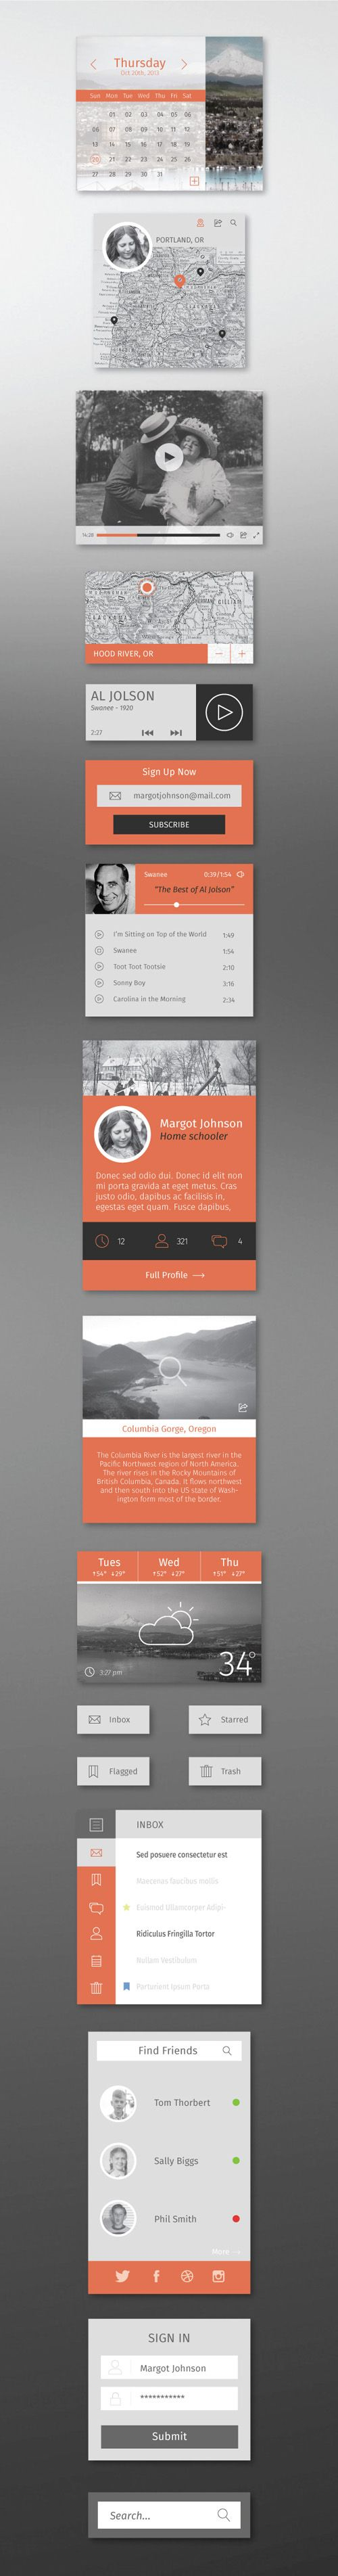 Winter UI Kit from: http://dribbble.com/shots/1287455-Flat-Winter-UI-Kit